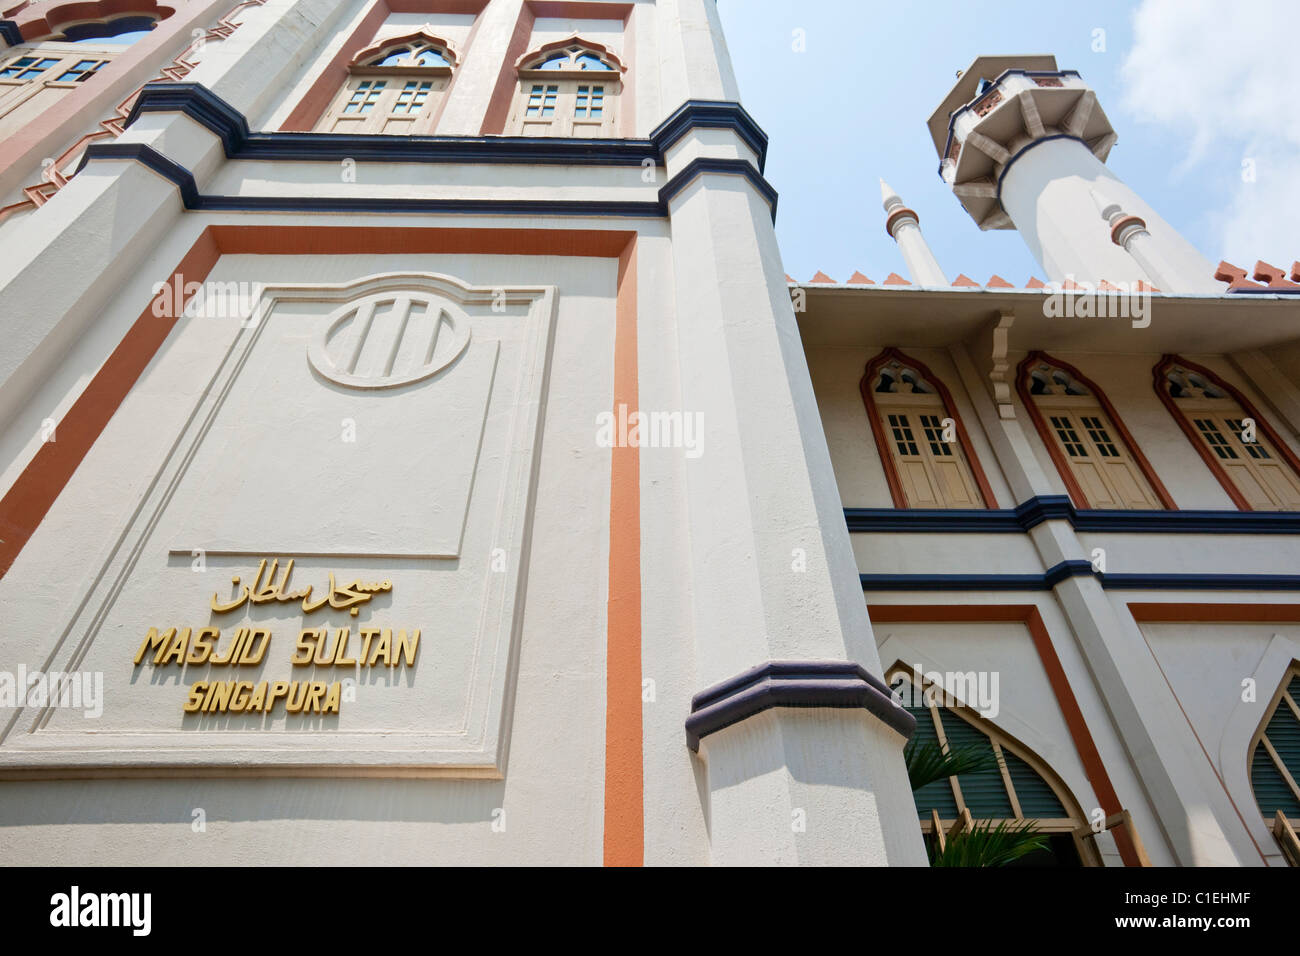 The Sultan Mosque in Kampong Glam, also known as the Arab Quarter, Singapore - Stock Image